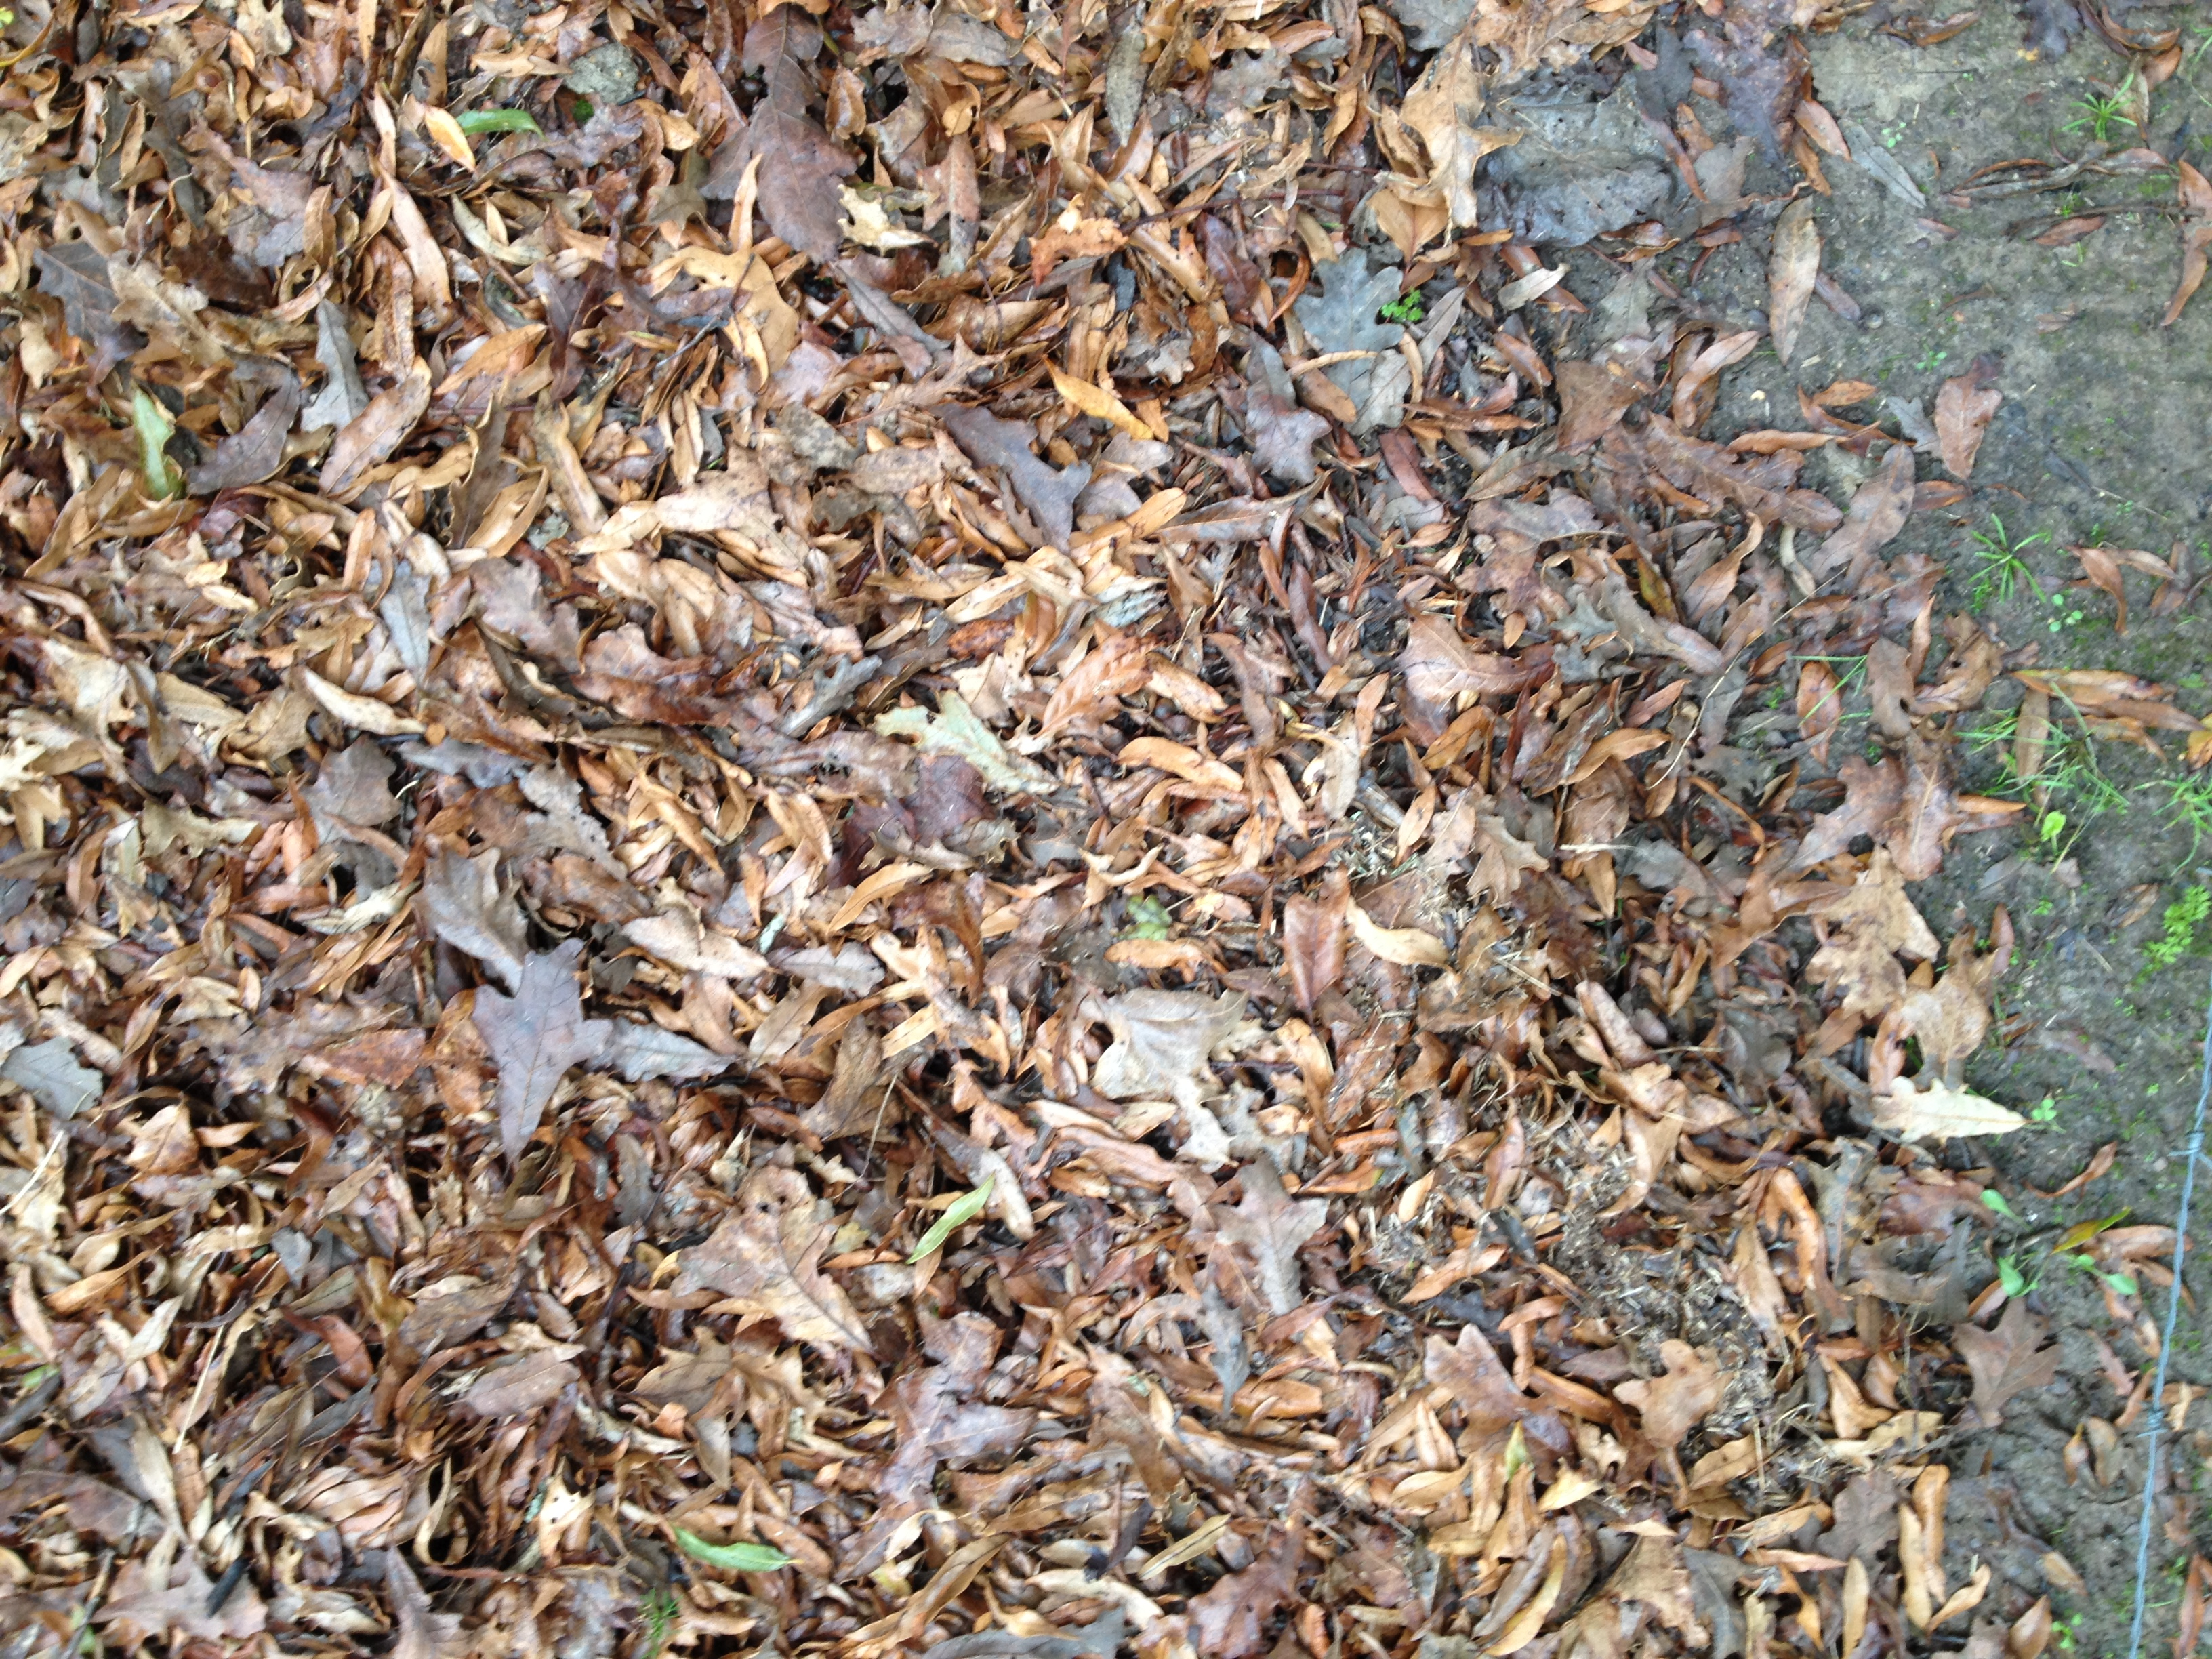 Leaves to be used for composting